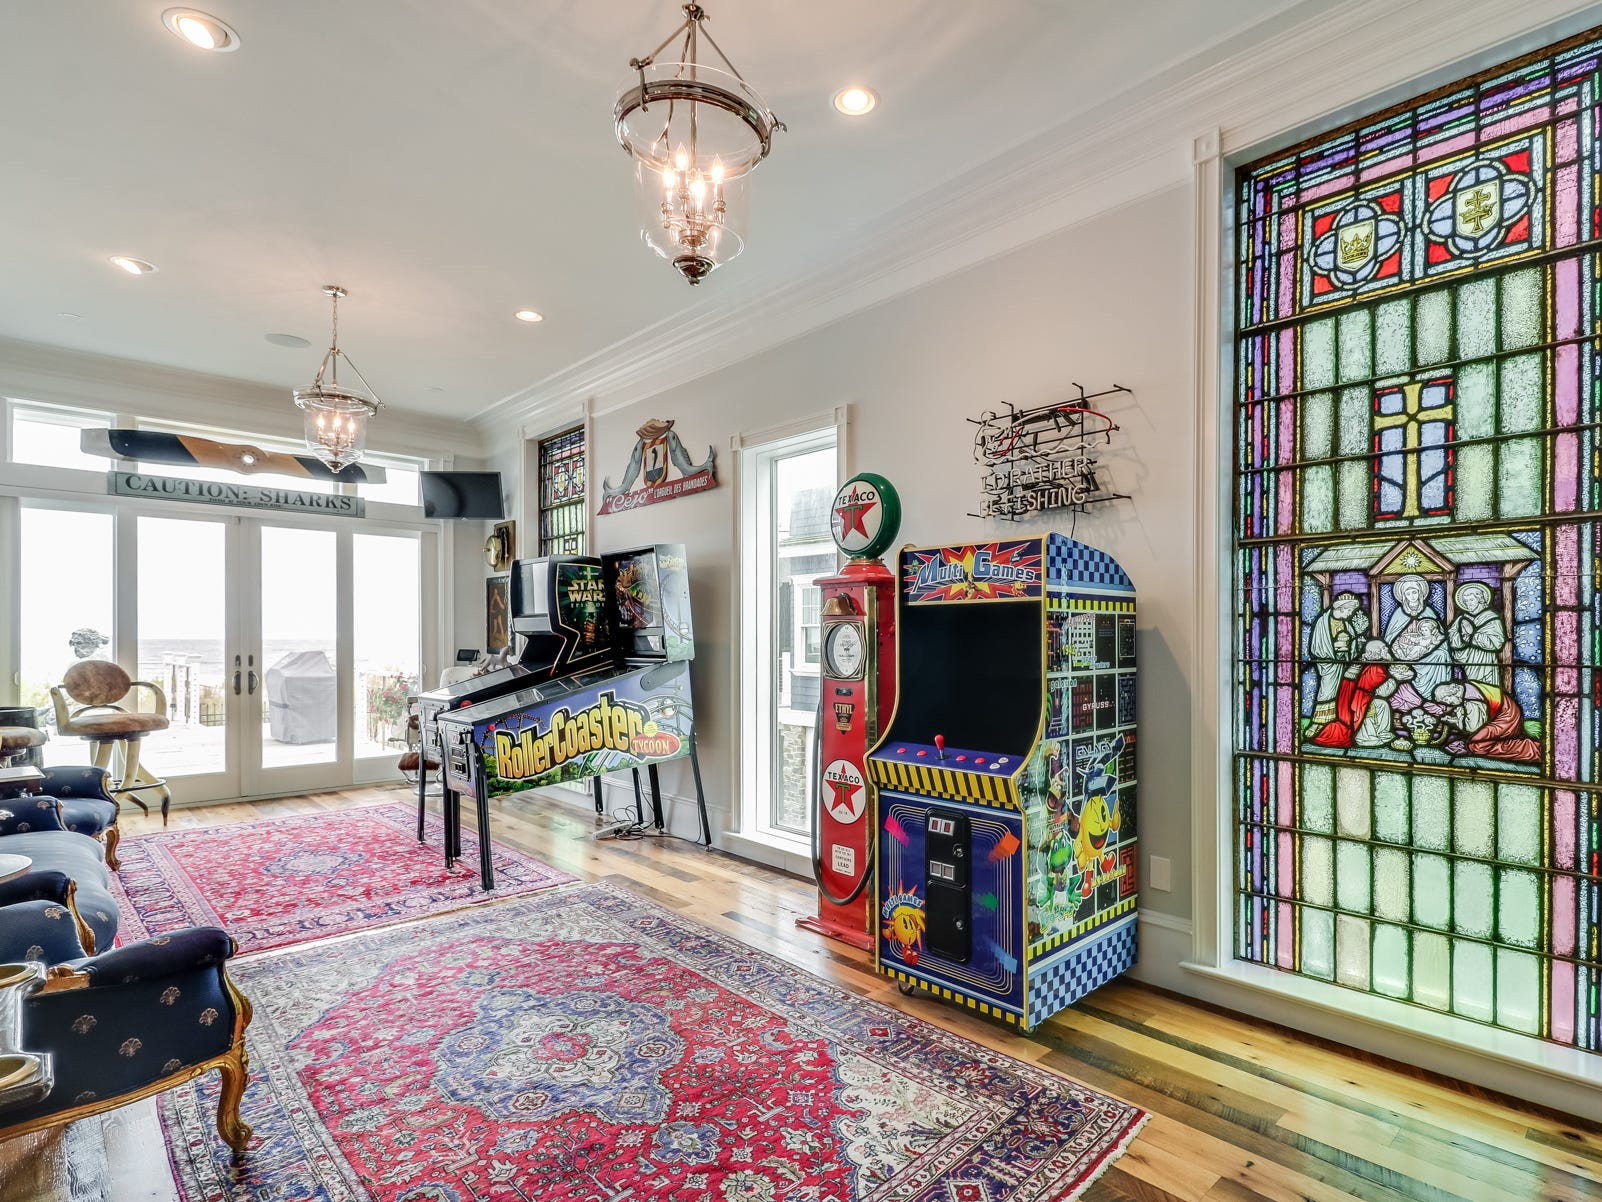 The colorful game room at 18 Ocean Drive in North Beach includes video games and a stained glass panel.